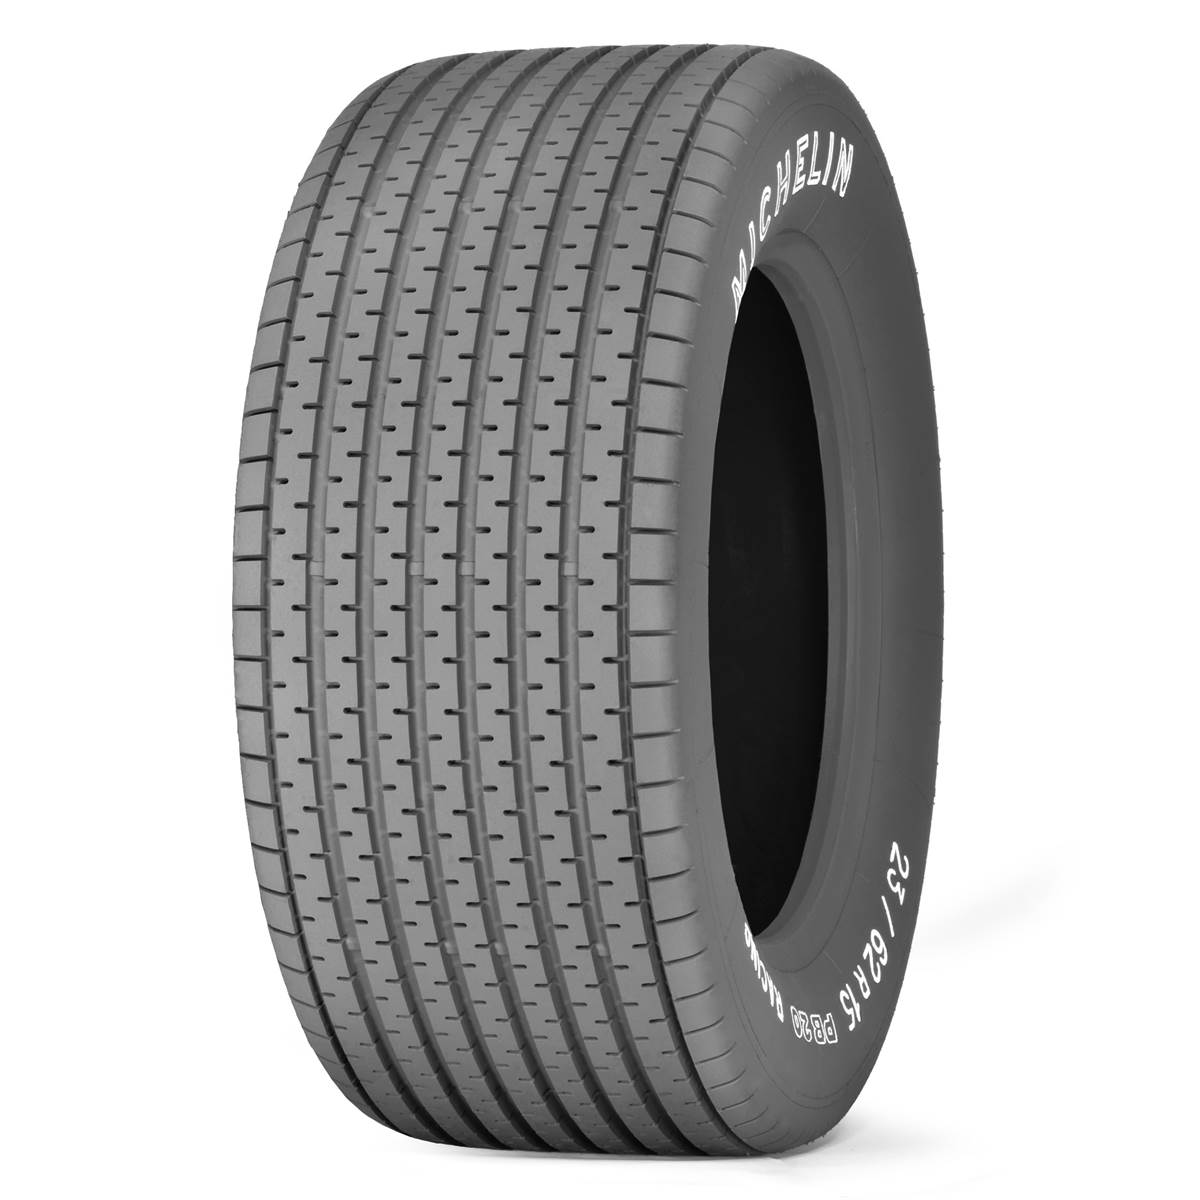 Pneu Michelin Collection 275/45R15 86H Pb20